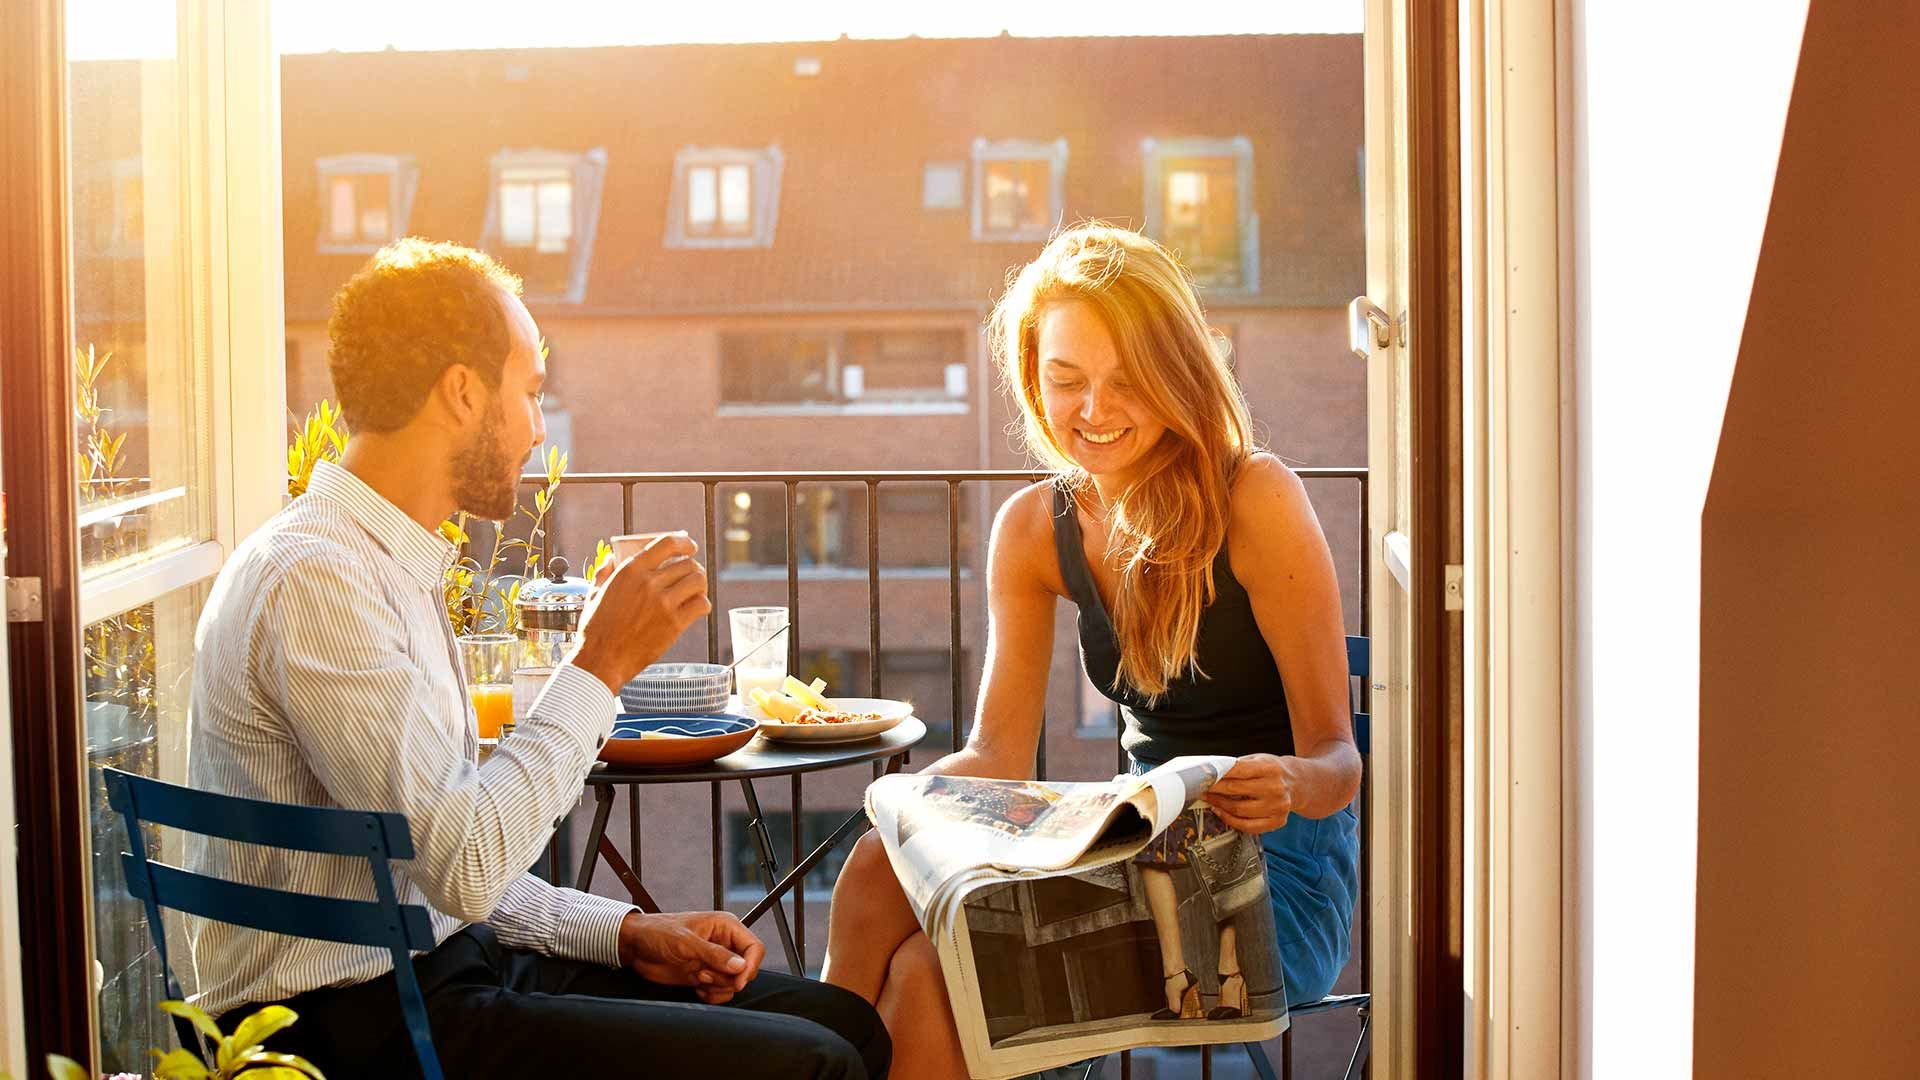 Couple dining together on a balcony